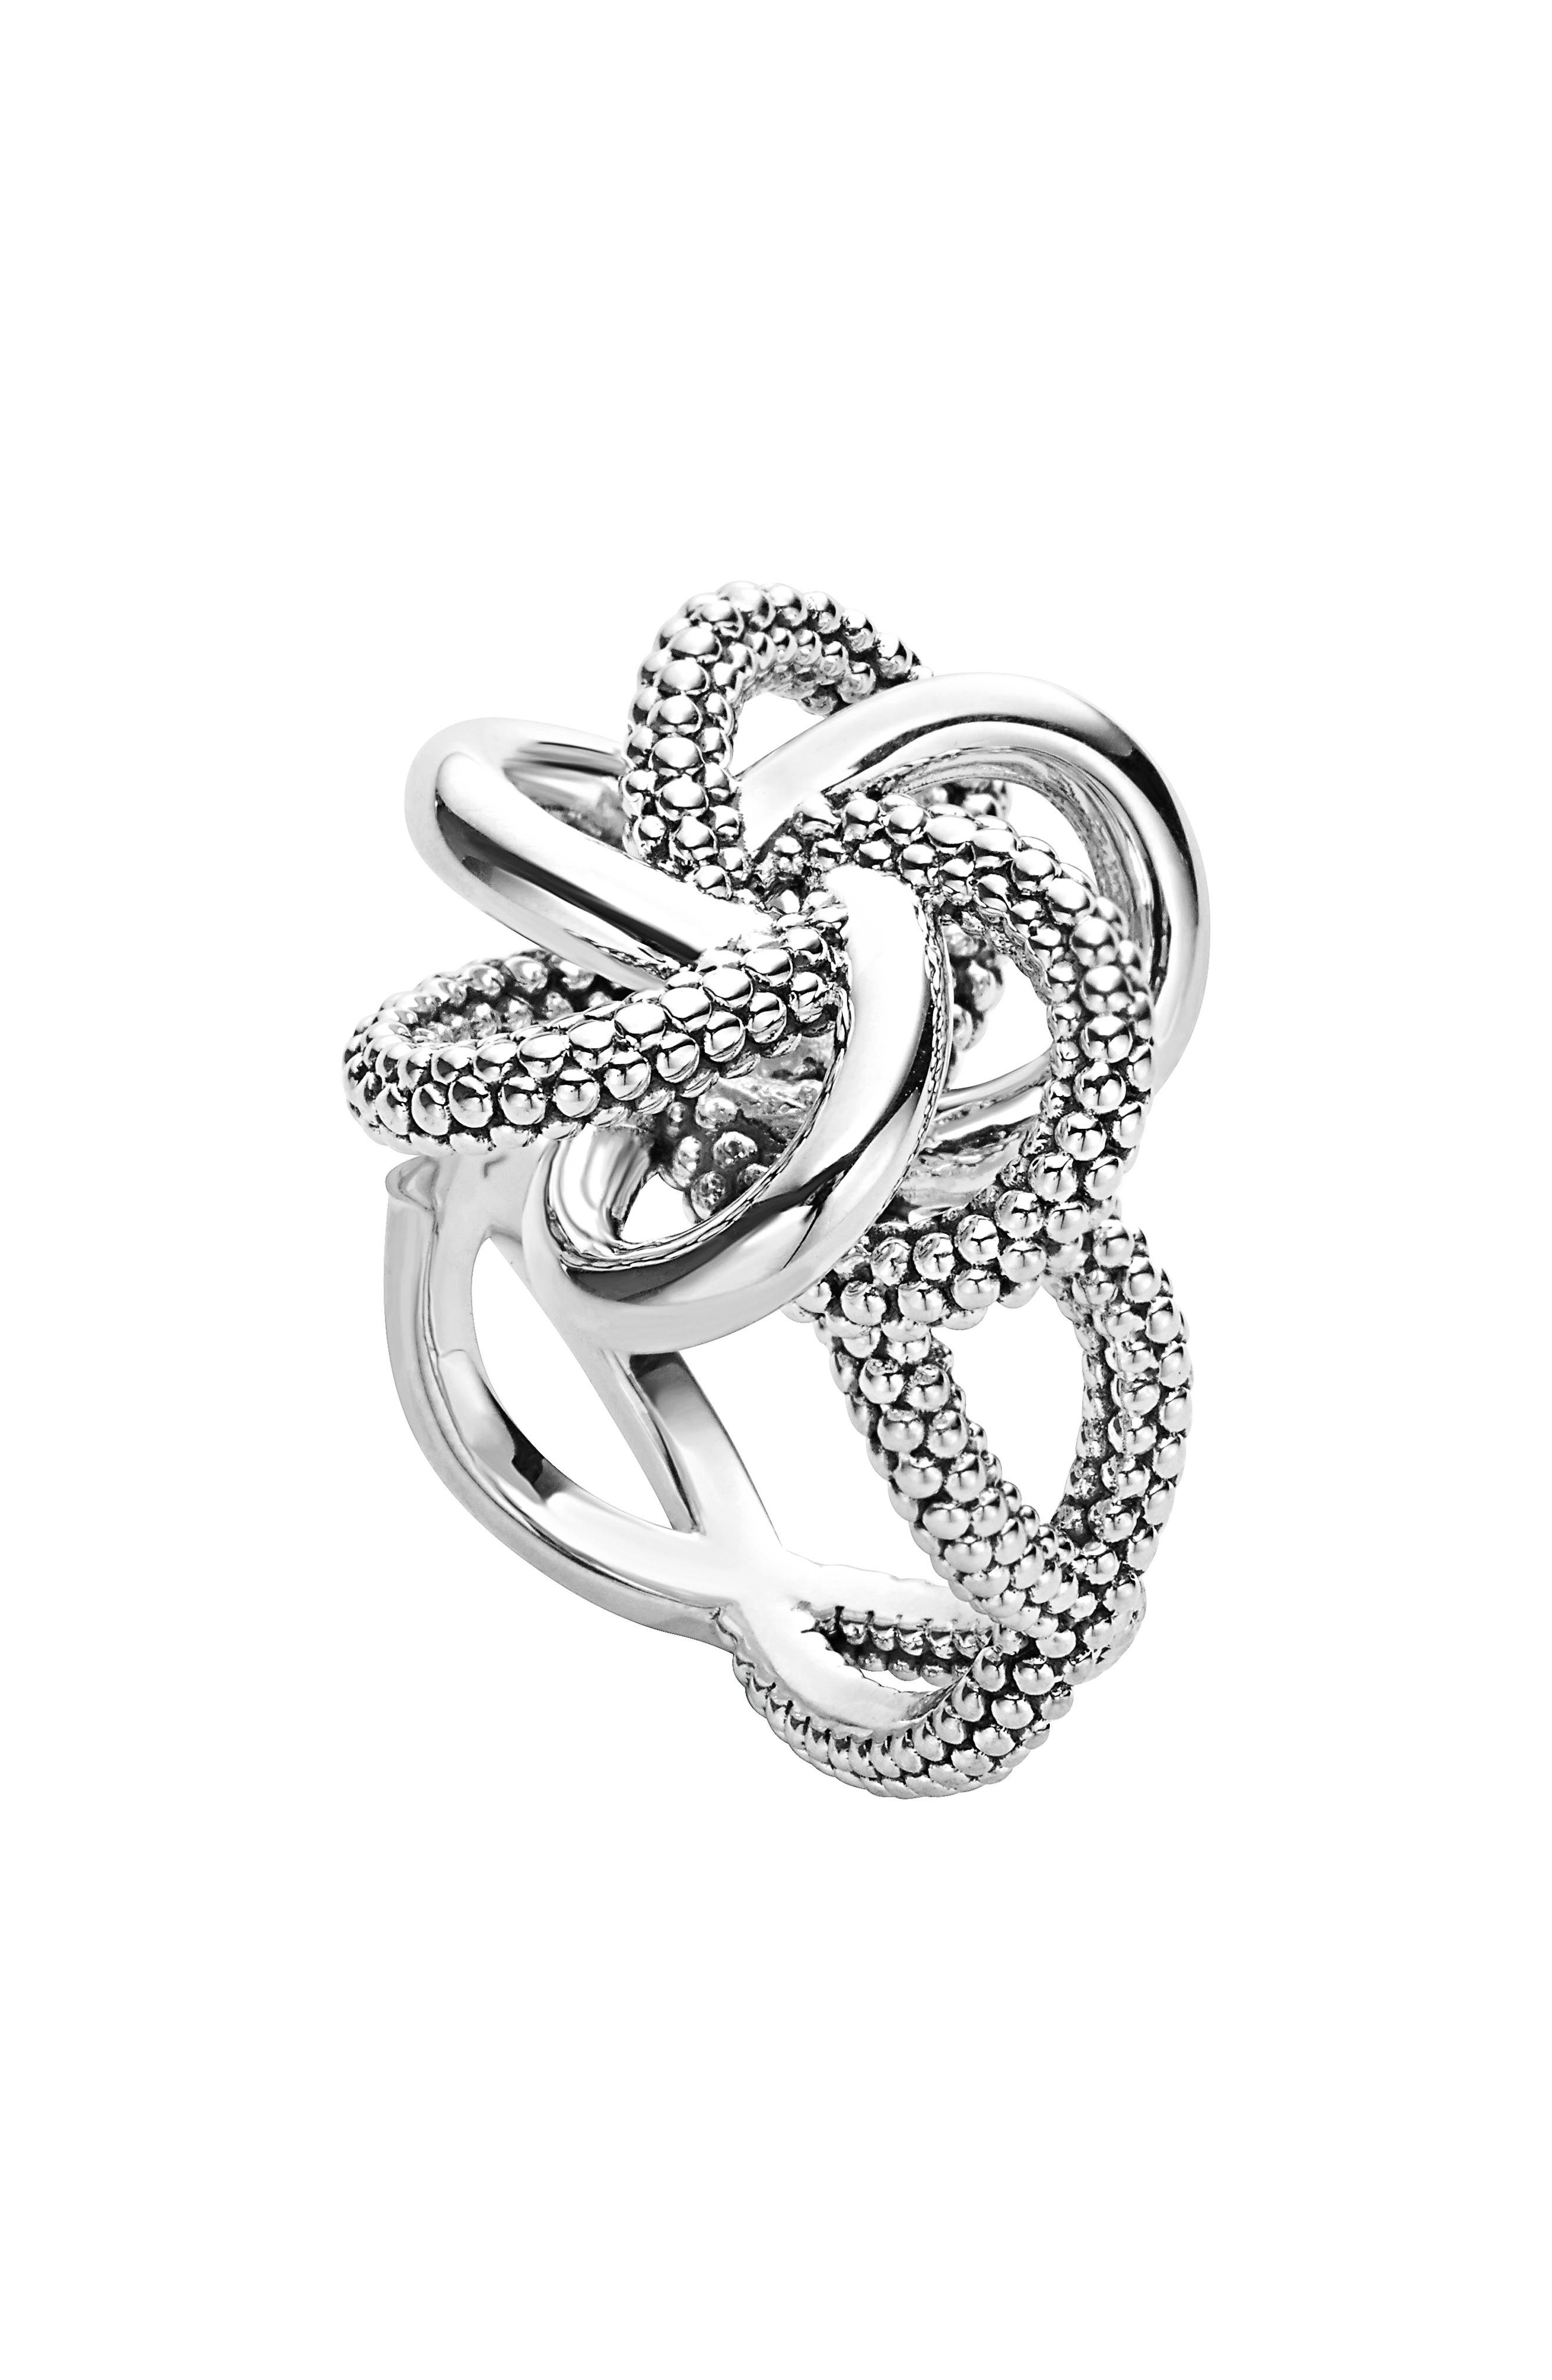 'Love Knot' Twist Ring,                         Main,                         color, Sterling Silver